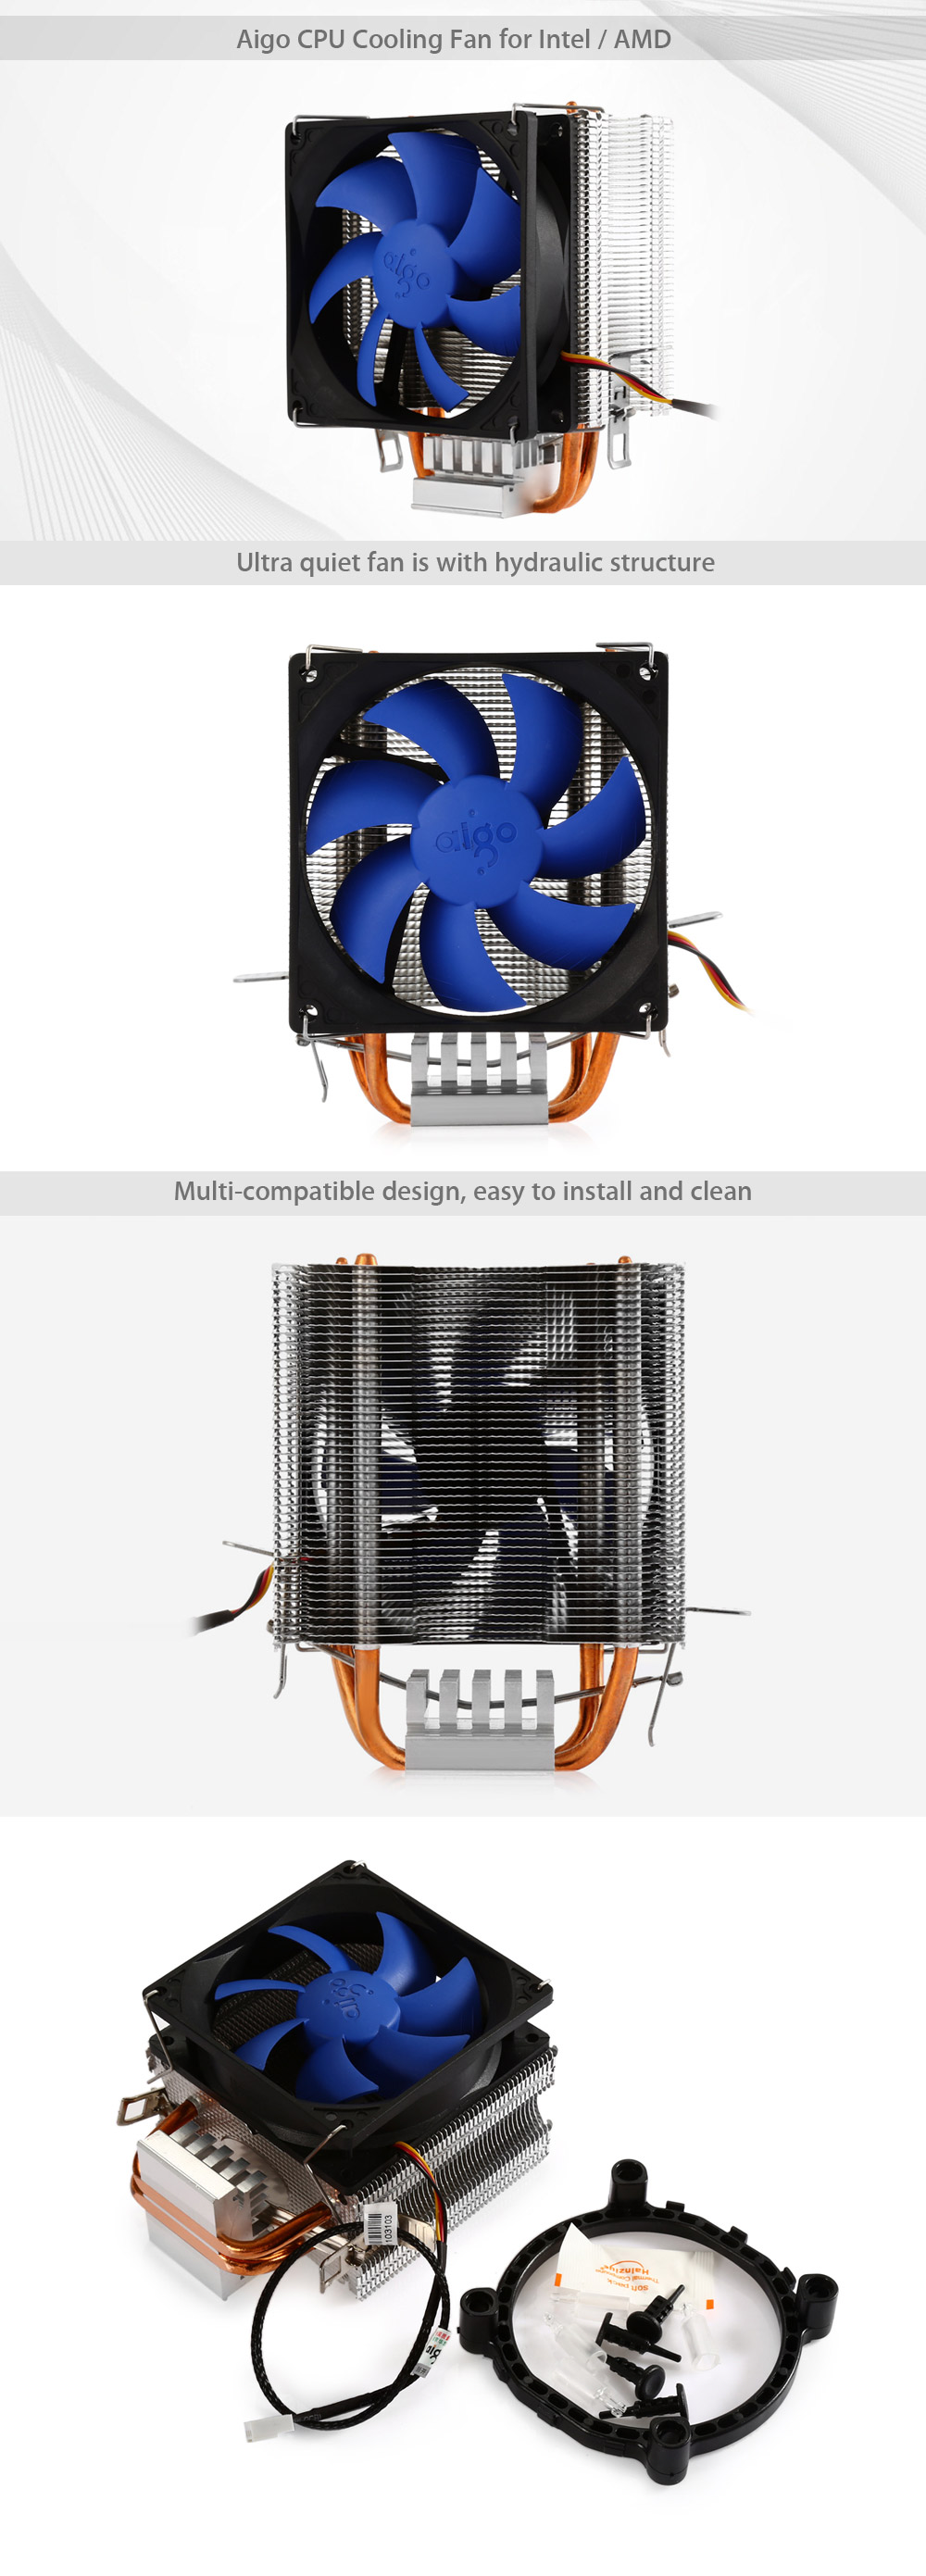 Aigo Dark Knight M4 CPU Cooling Fan for Intel / AMD